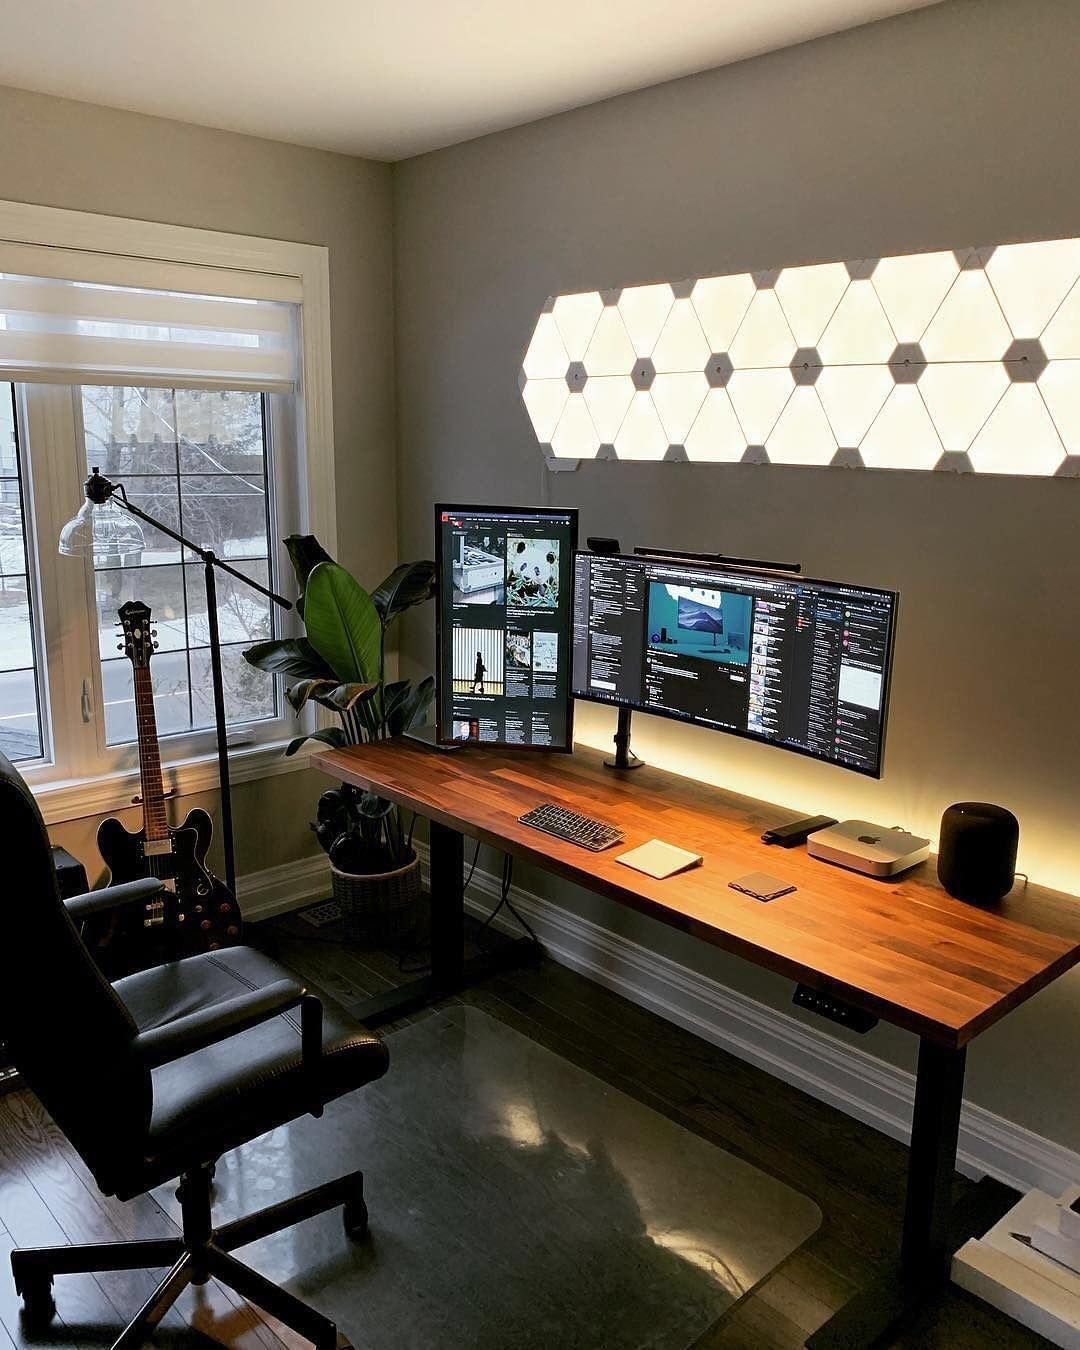 Great Home Office Setup By Mrisad Nanoleaf Light Panels Look Quite Cool When They Re Set To White Like This Home Office Setup Room Setup Bedroom Setup